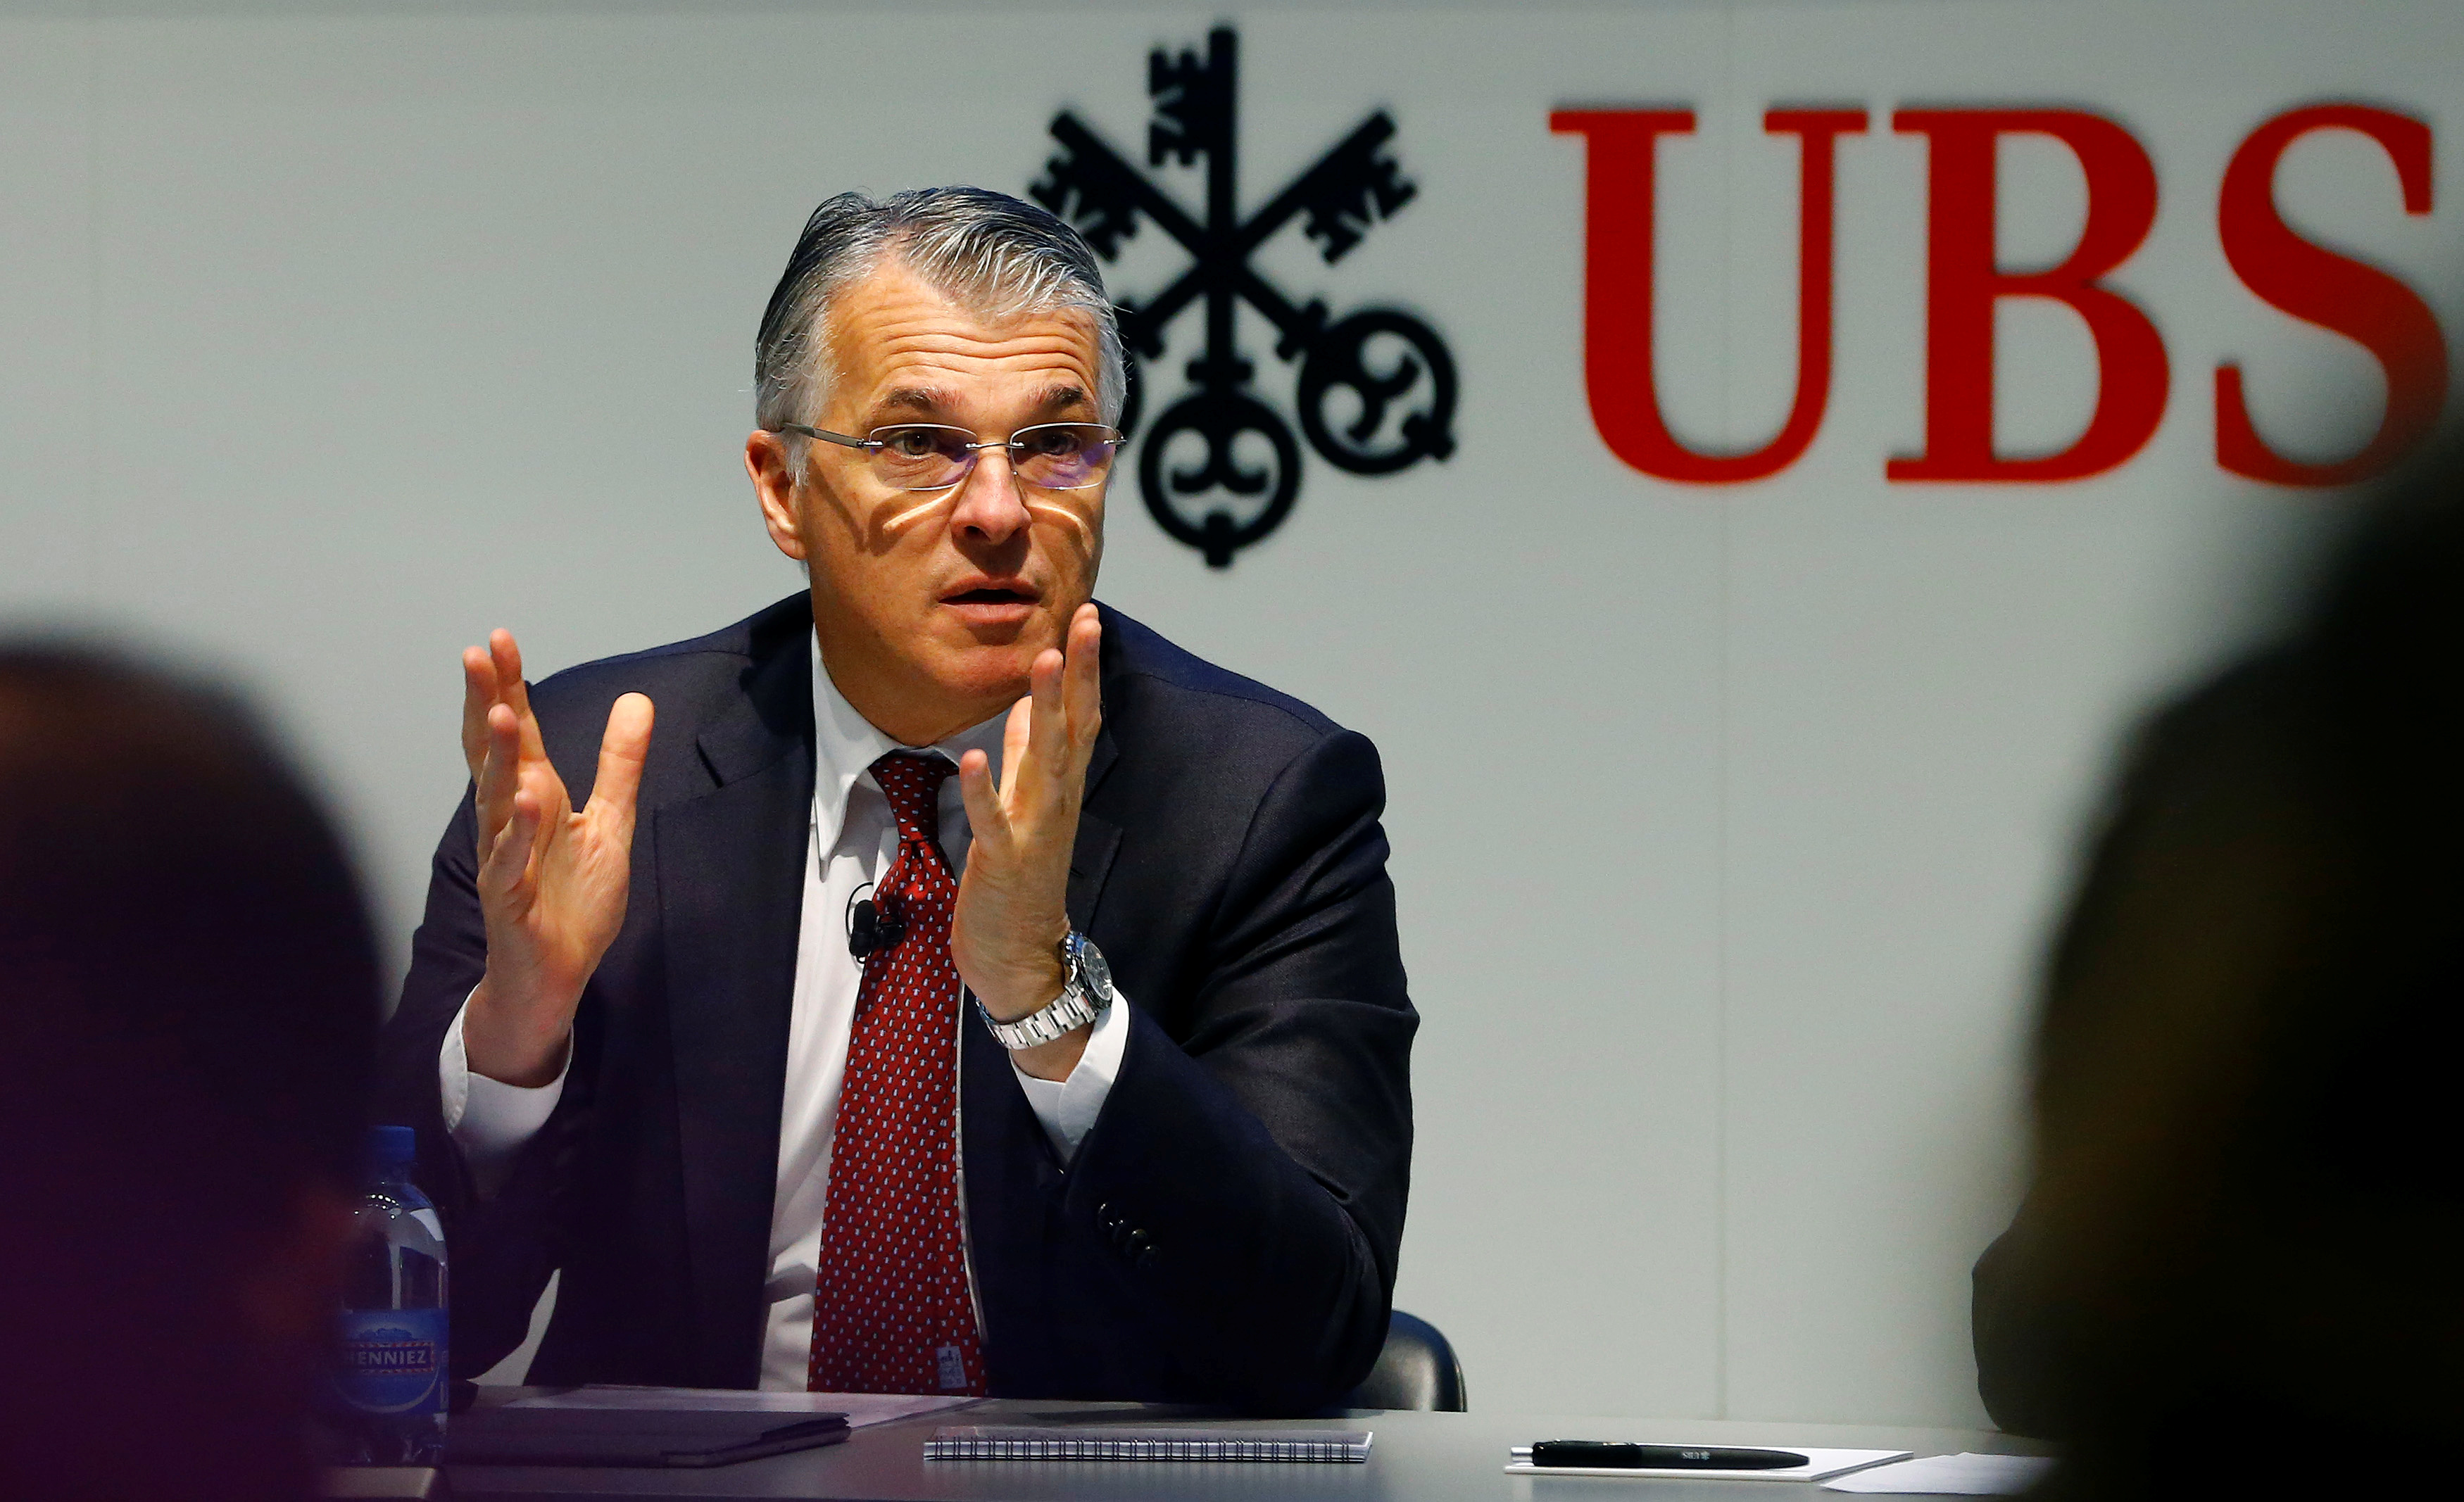 Misfiring UBS traders are only part of the problem